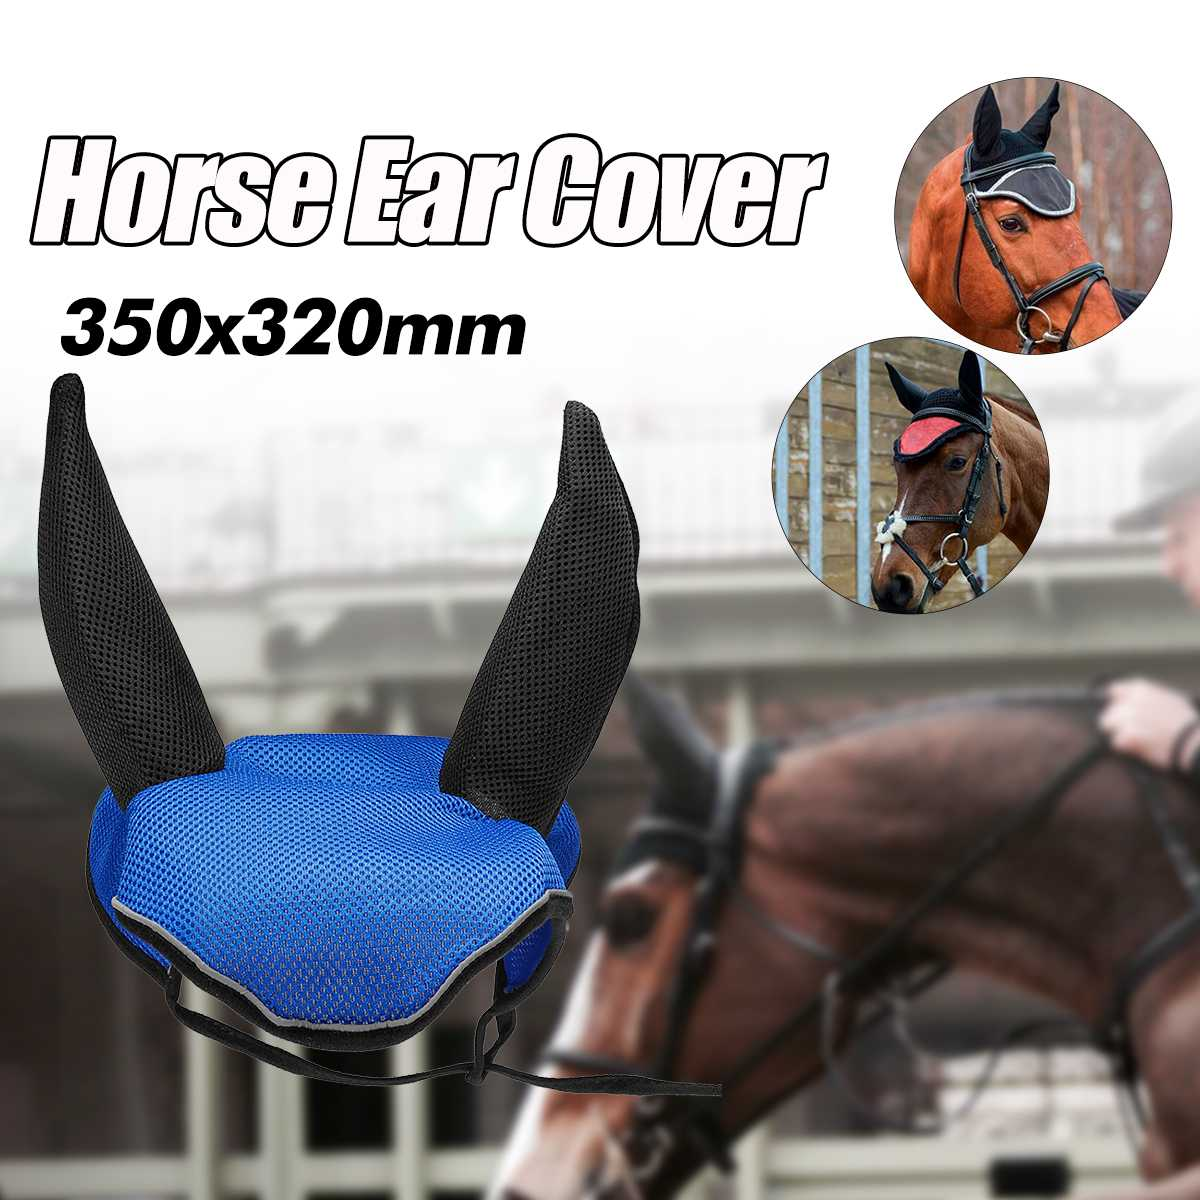 Outdoor Equipment Horse Ear Cover  HorseEquestrian Protector Horse Riding Breathable Meshed Ear Net Cover Prevent Insects